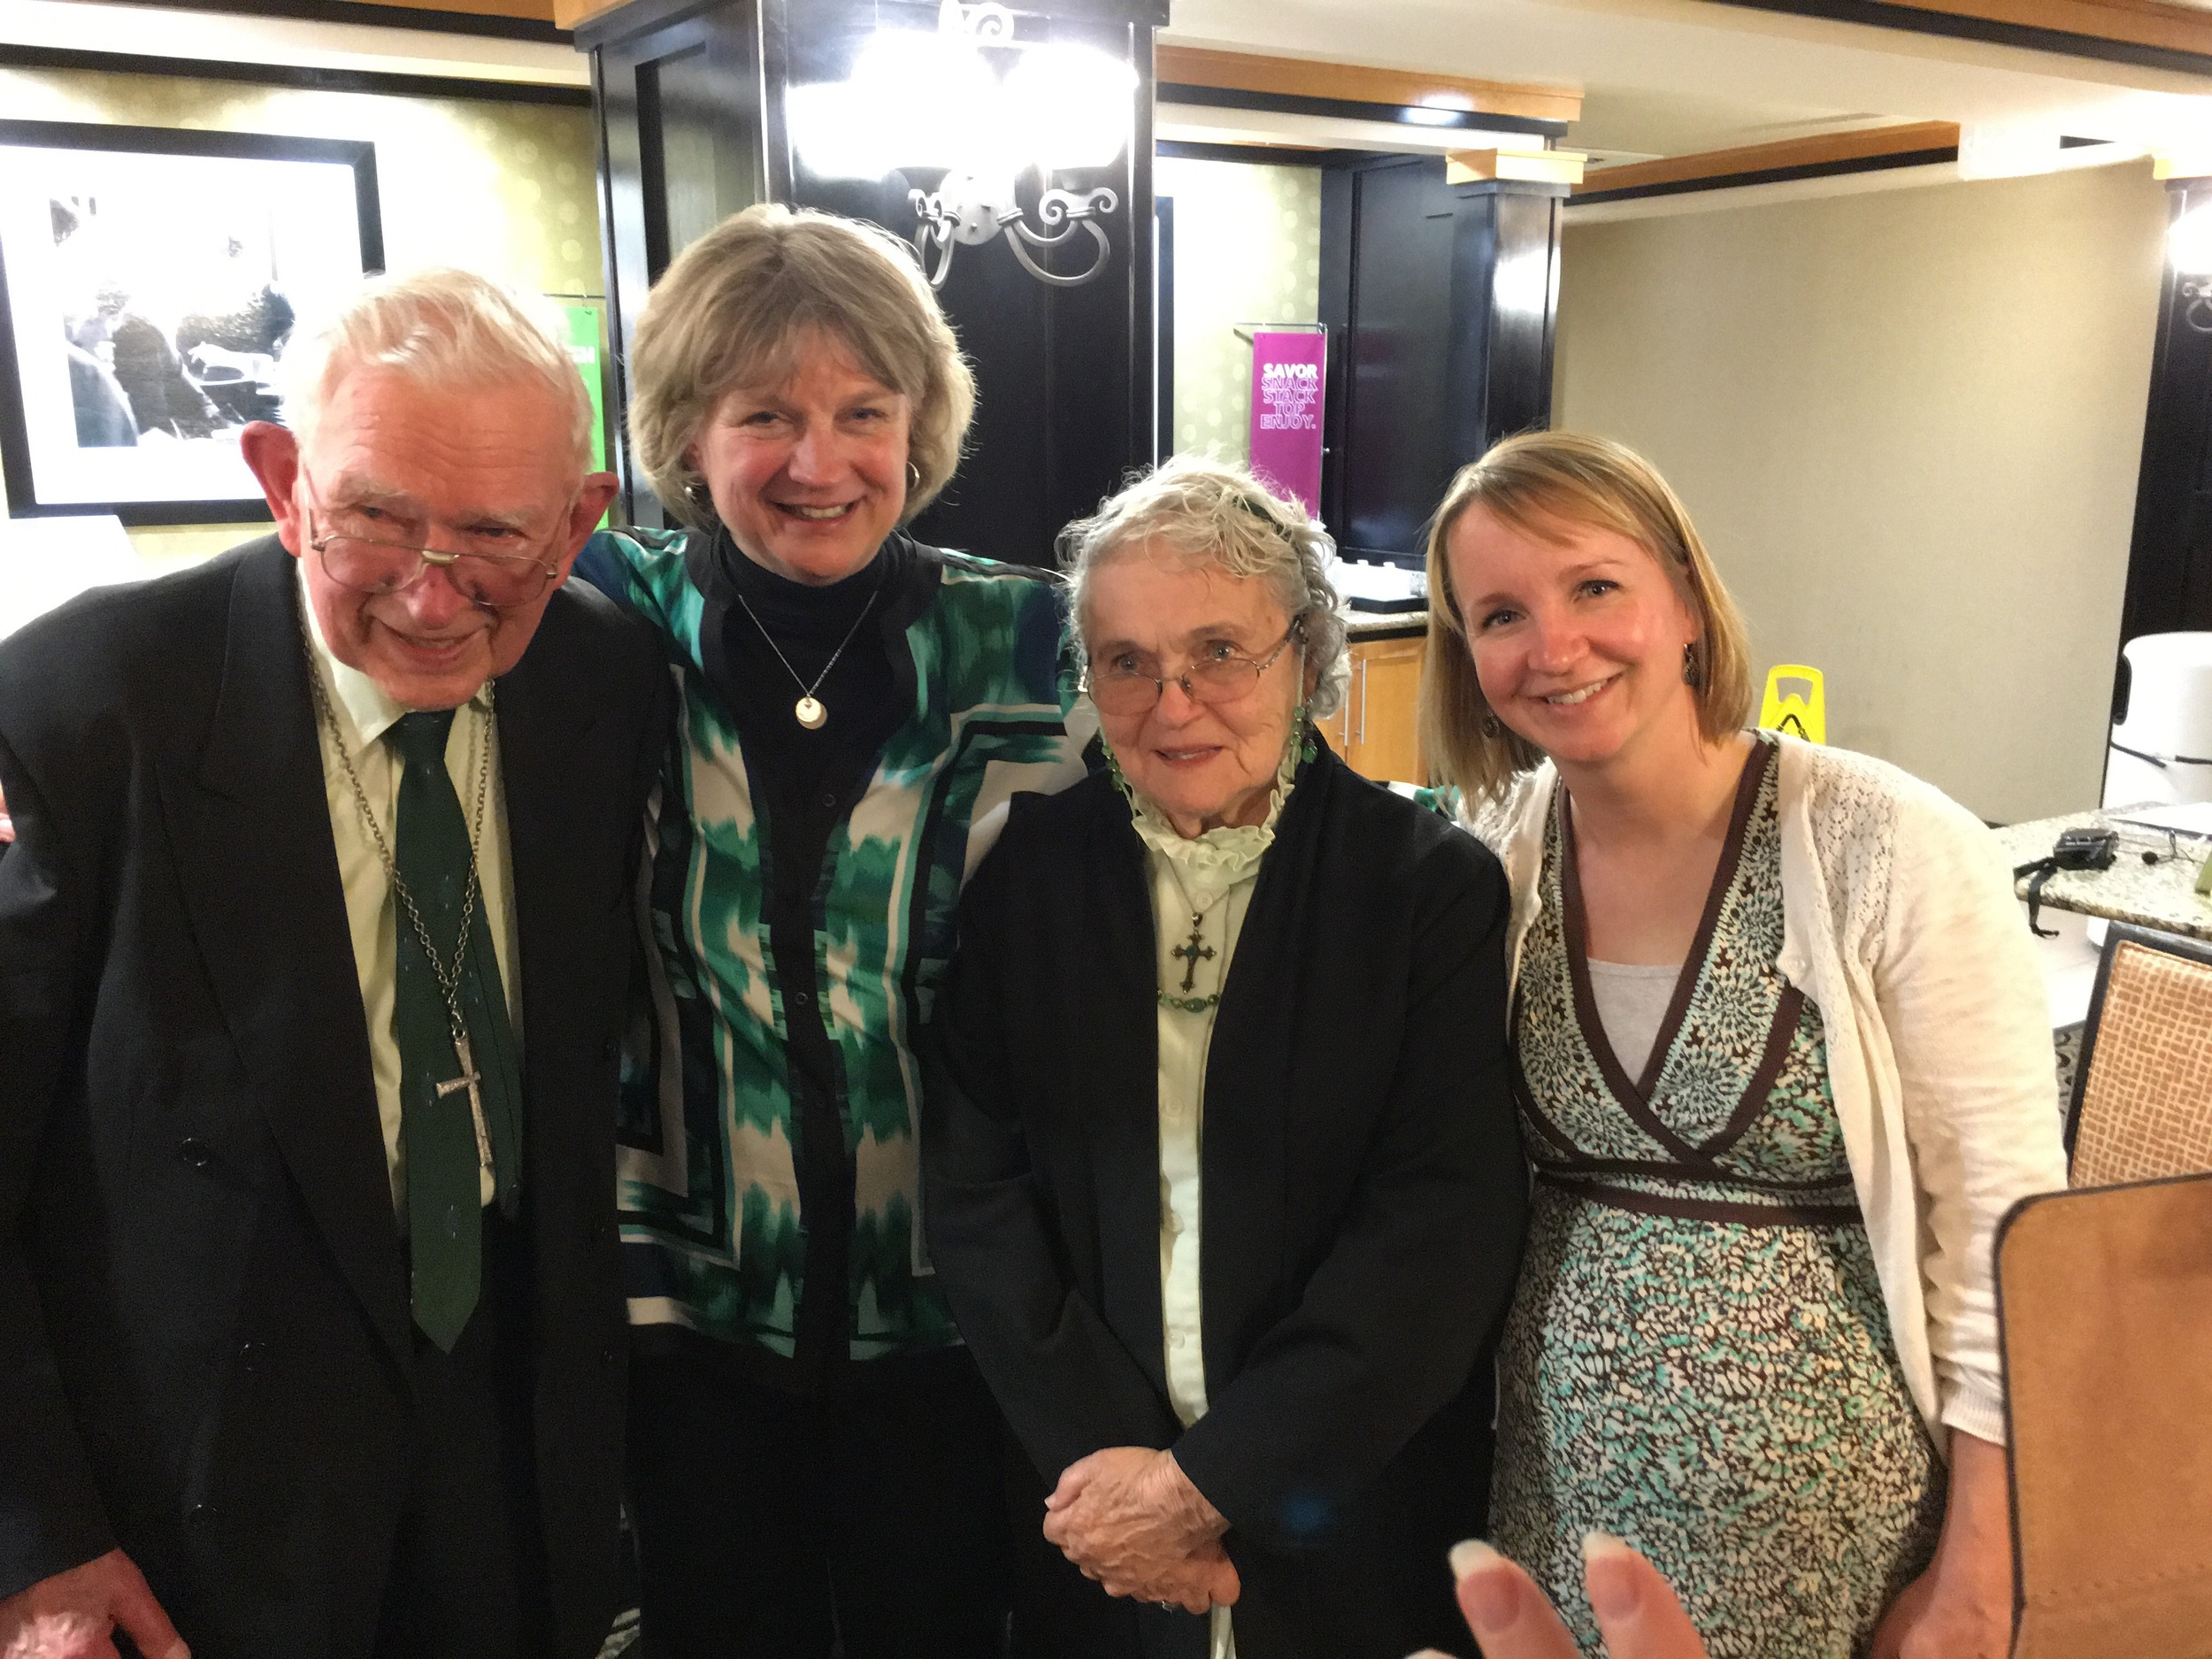 Rev. Bob and Jeanne Graetz with Bishop Ann Svennungsen and Pastor Stephanie